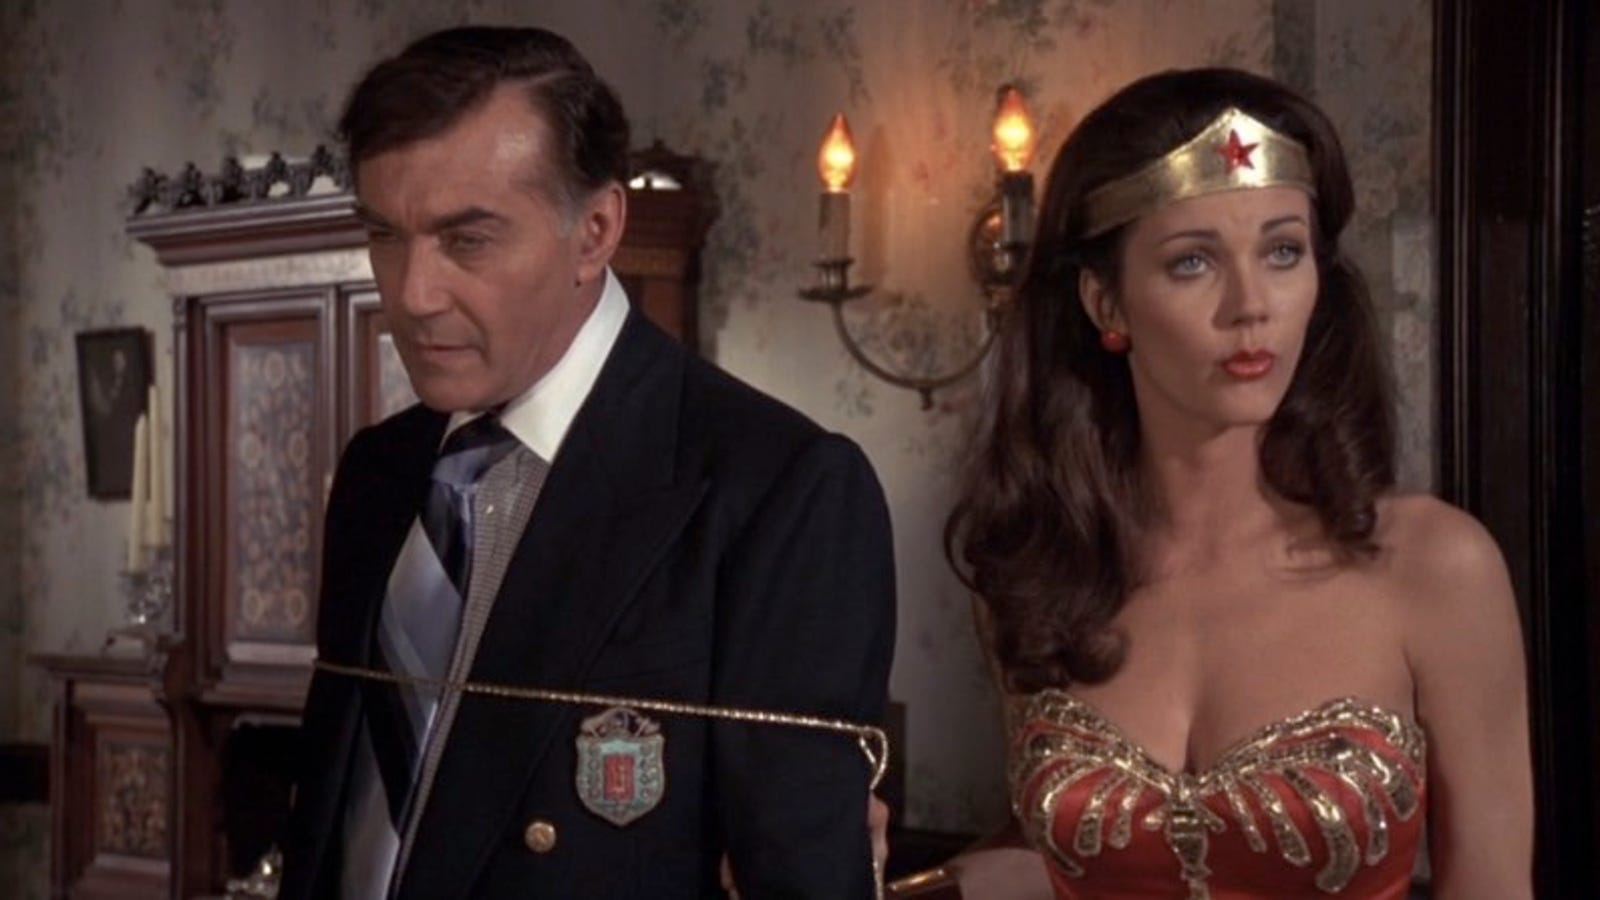 The 12 Most Ridiculous Episodes From the '70s Wonder Woman TV Series